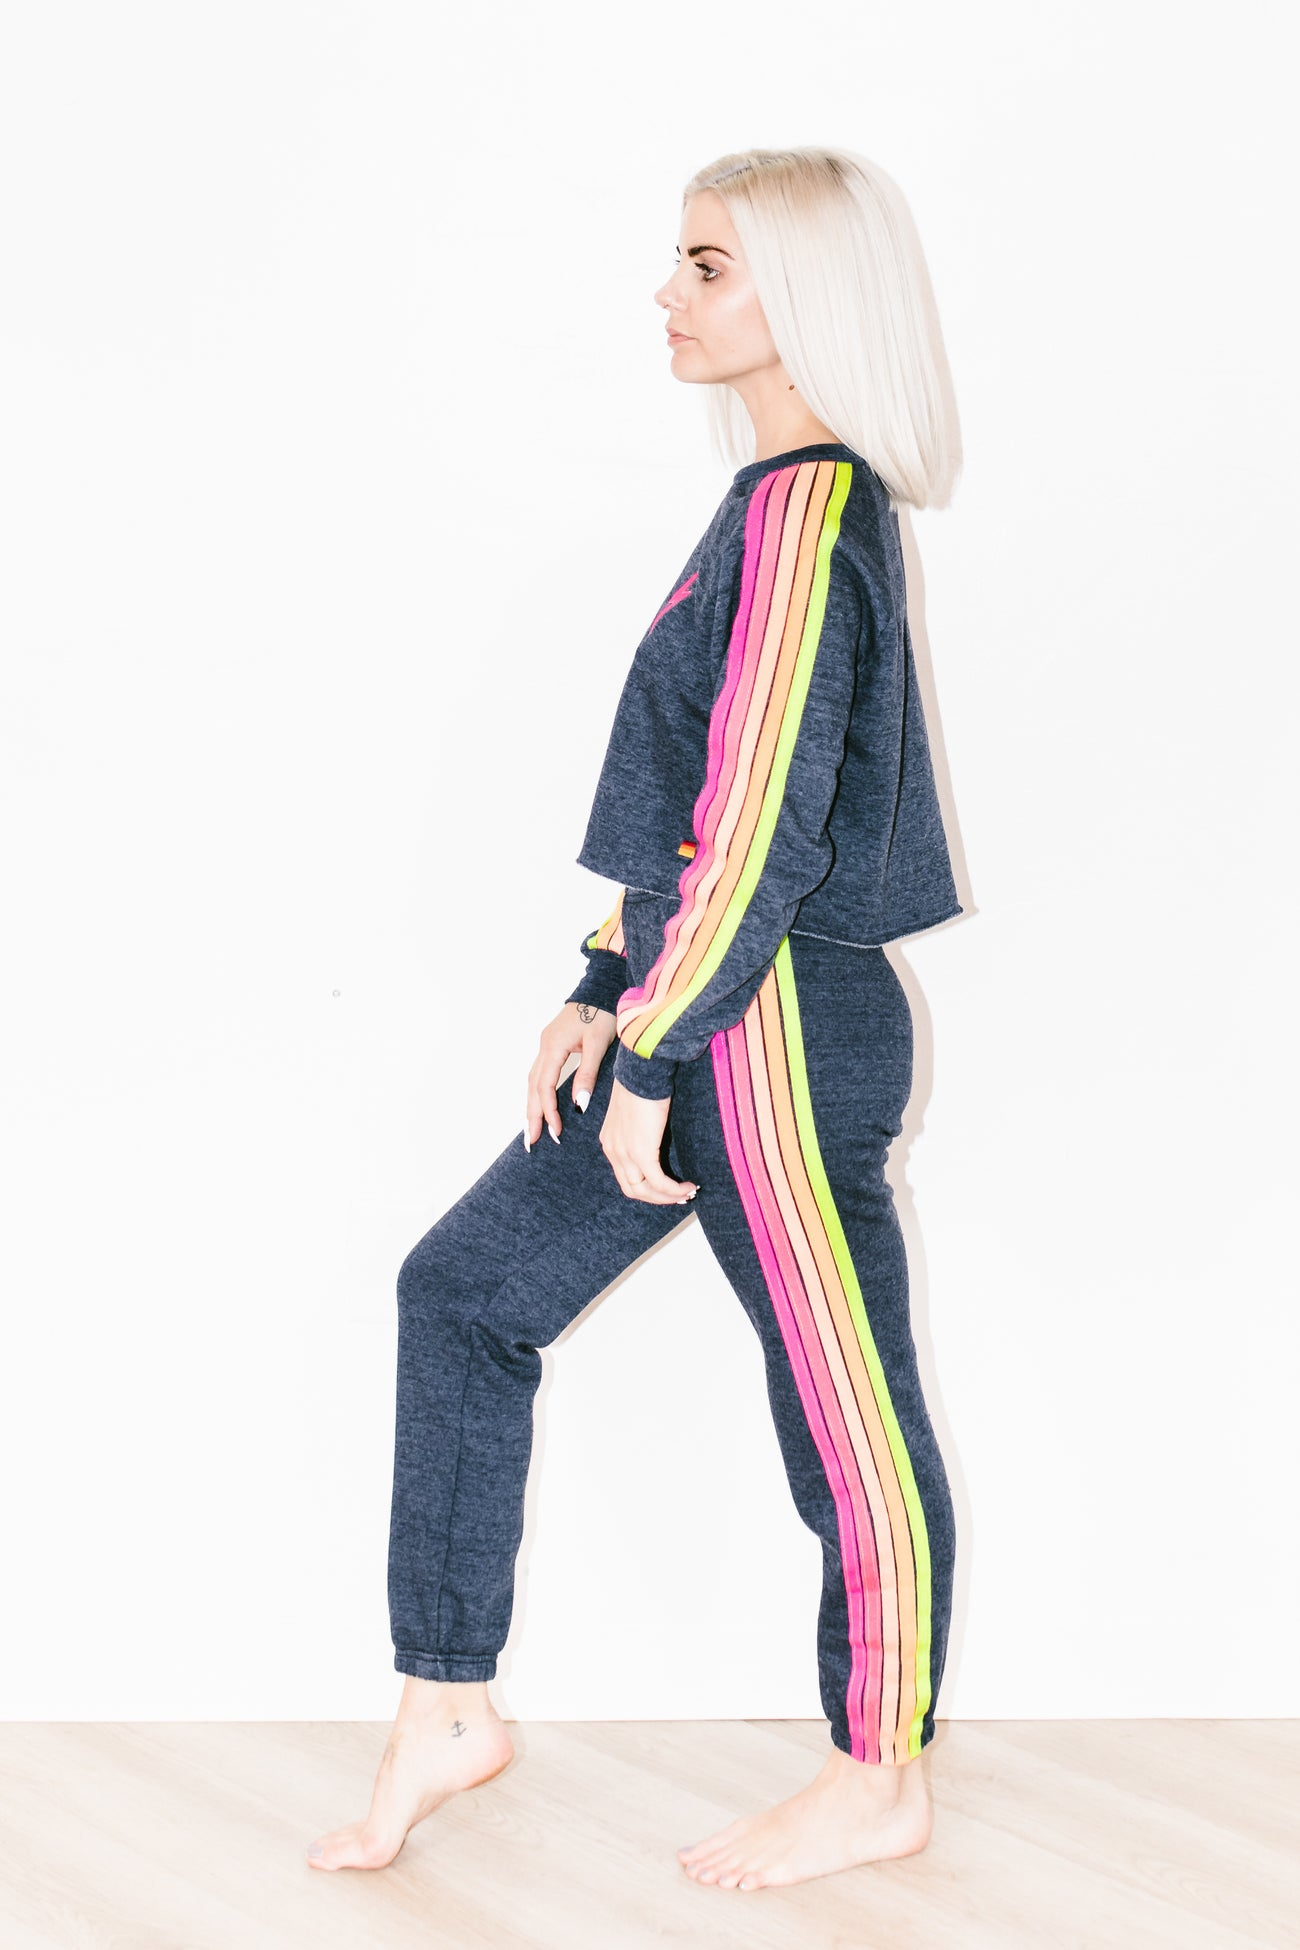 Bolt Cropped Classic Crew Sweatshirt in Heather Navy Neon